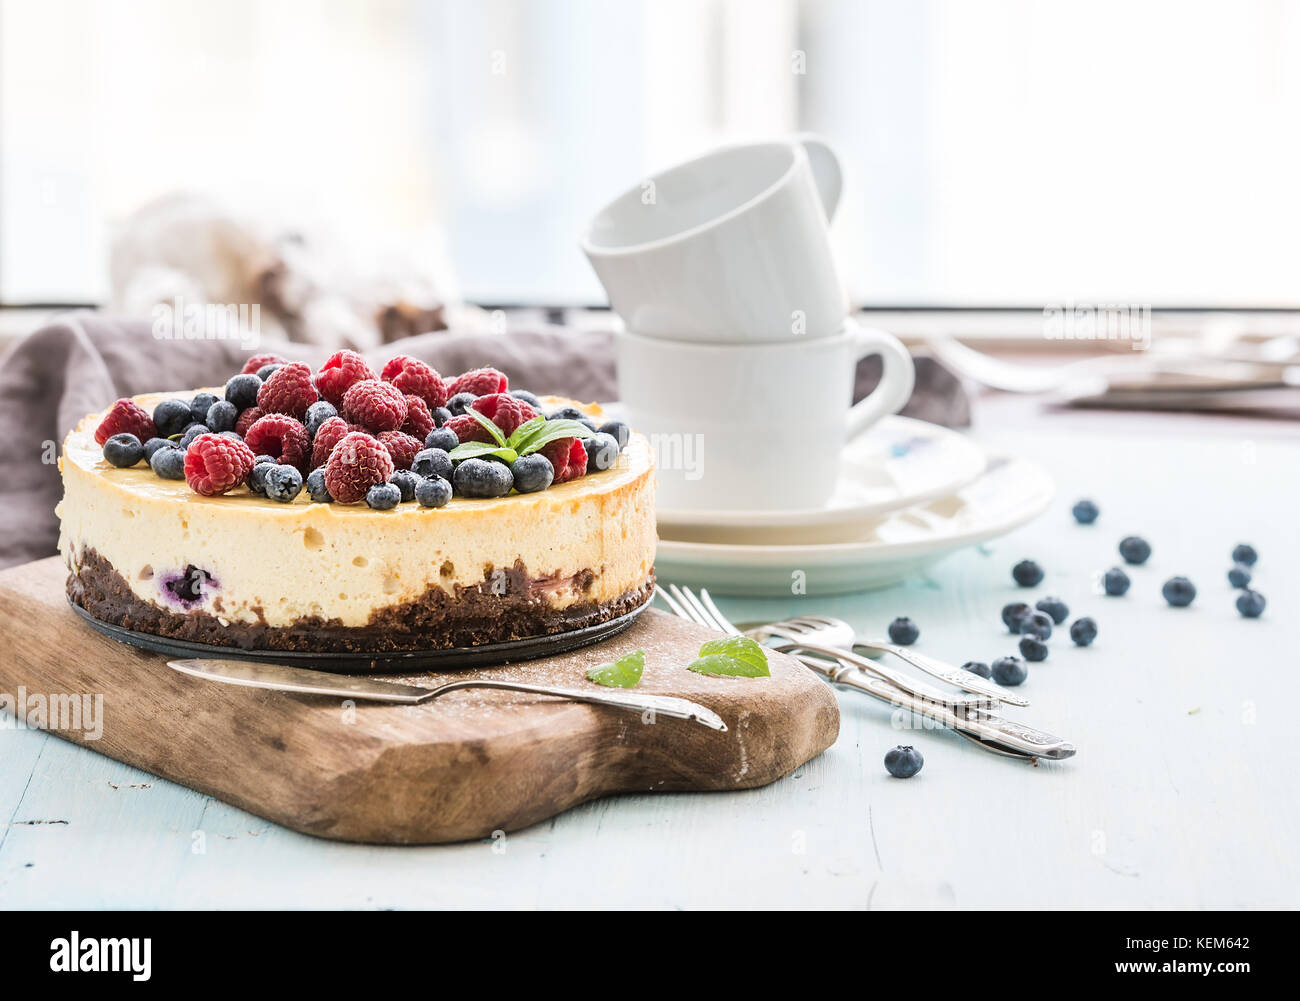 Cheesecake with fresh raspberries and blueberries on a wooden serving board, plates, cups, kitchen napkin, silverware - Stock Image